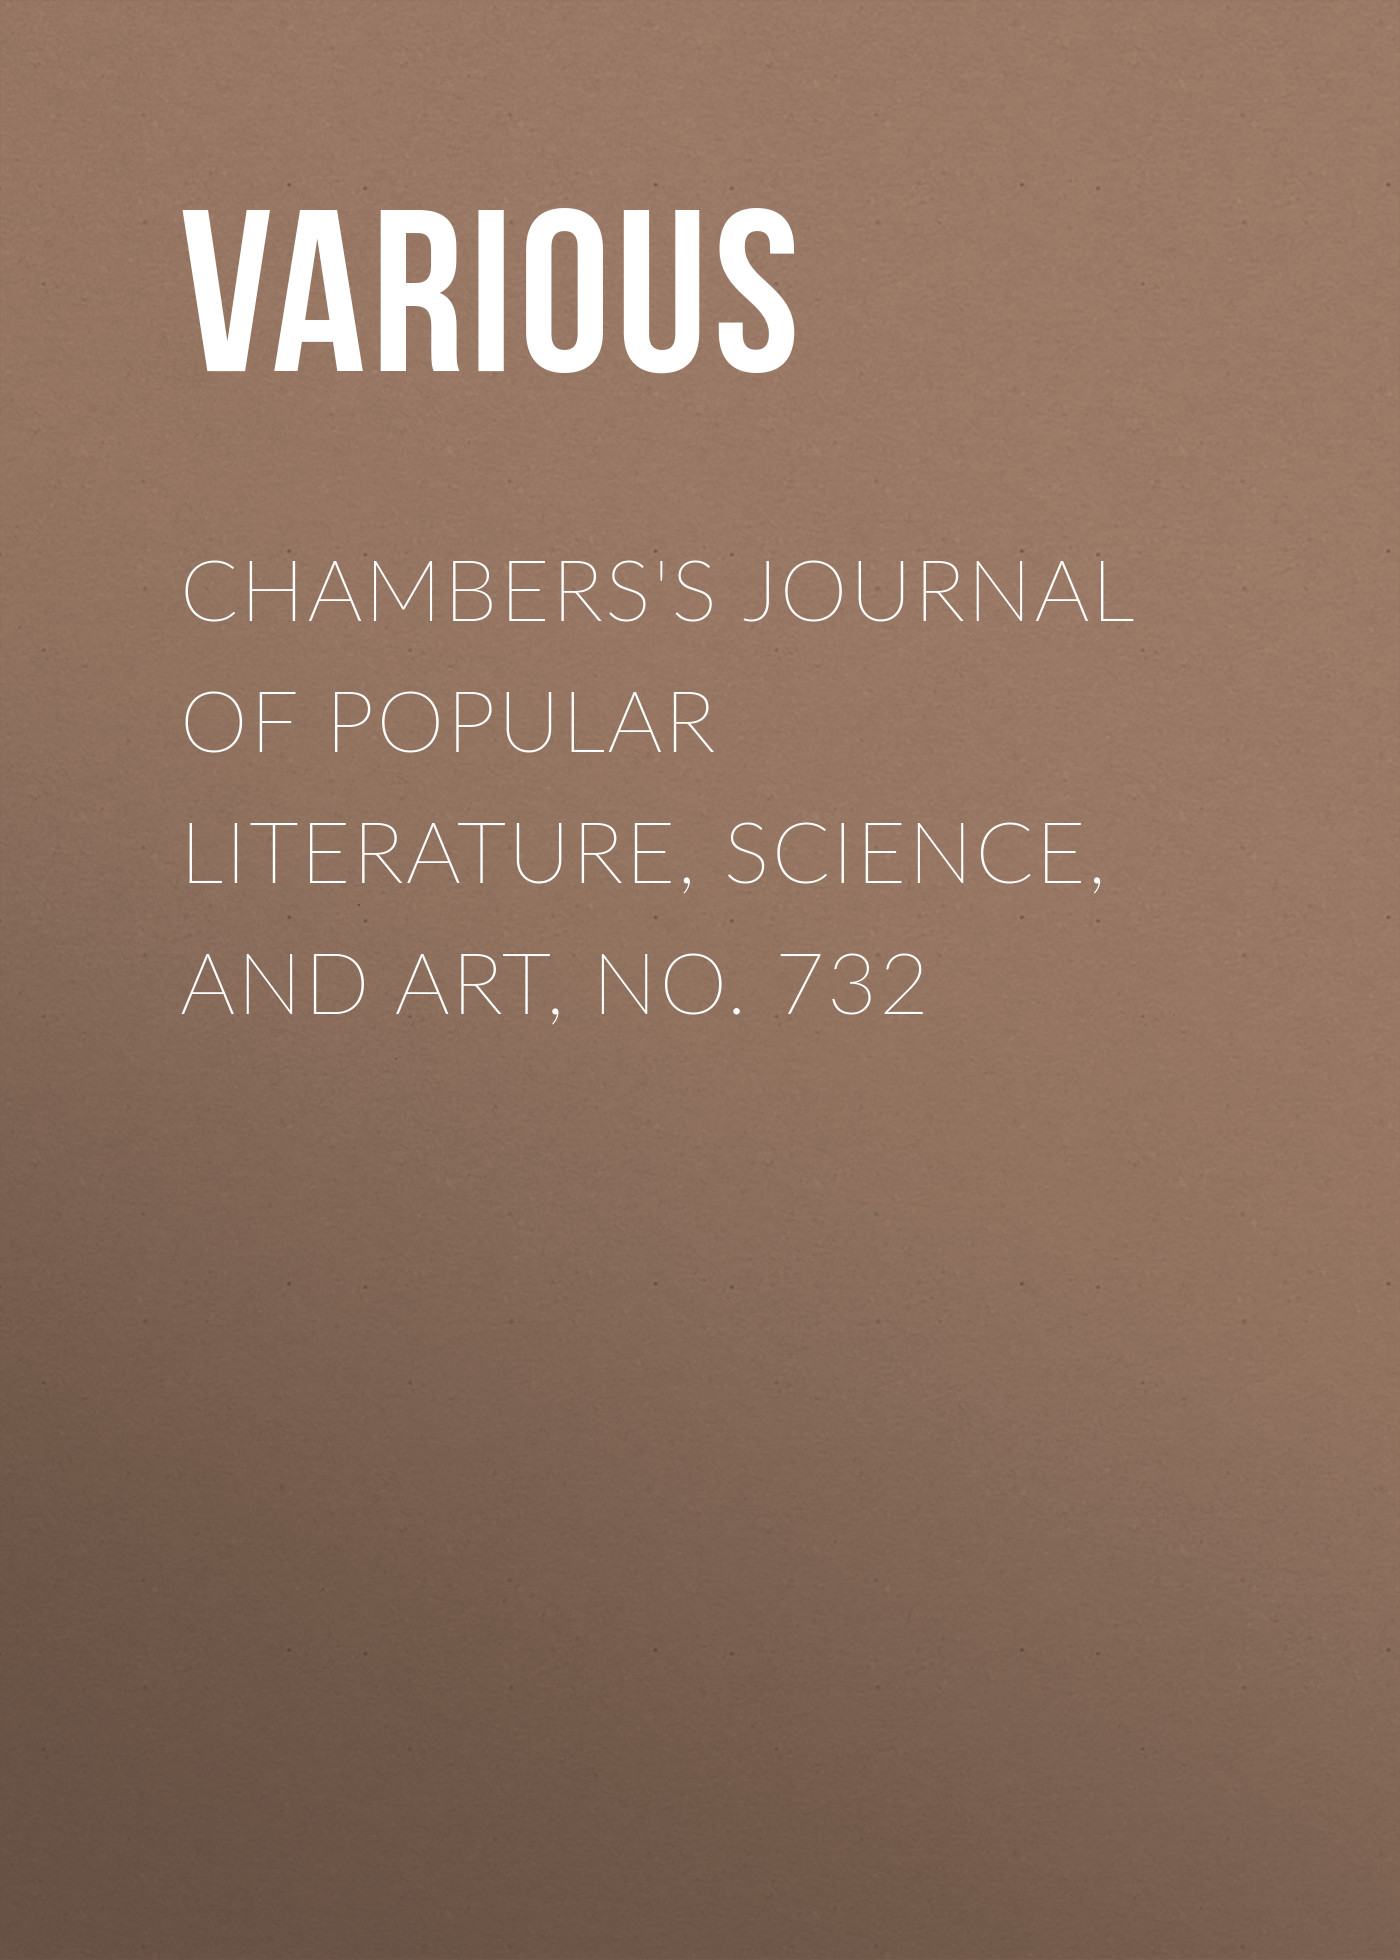 Chambers\'s Journal of Popular Literature, Science, and Art, No. 732 ( Various  )